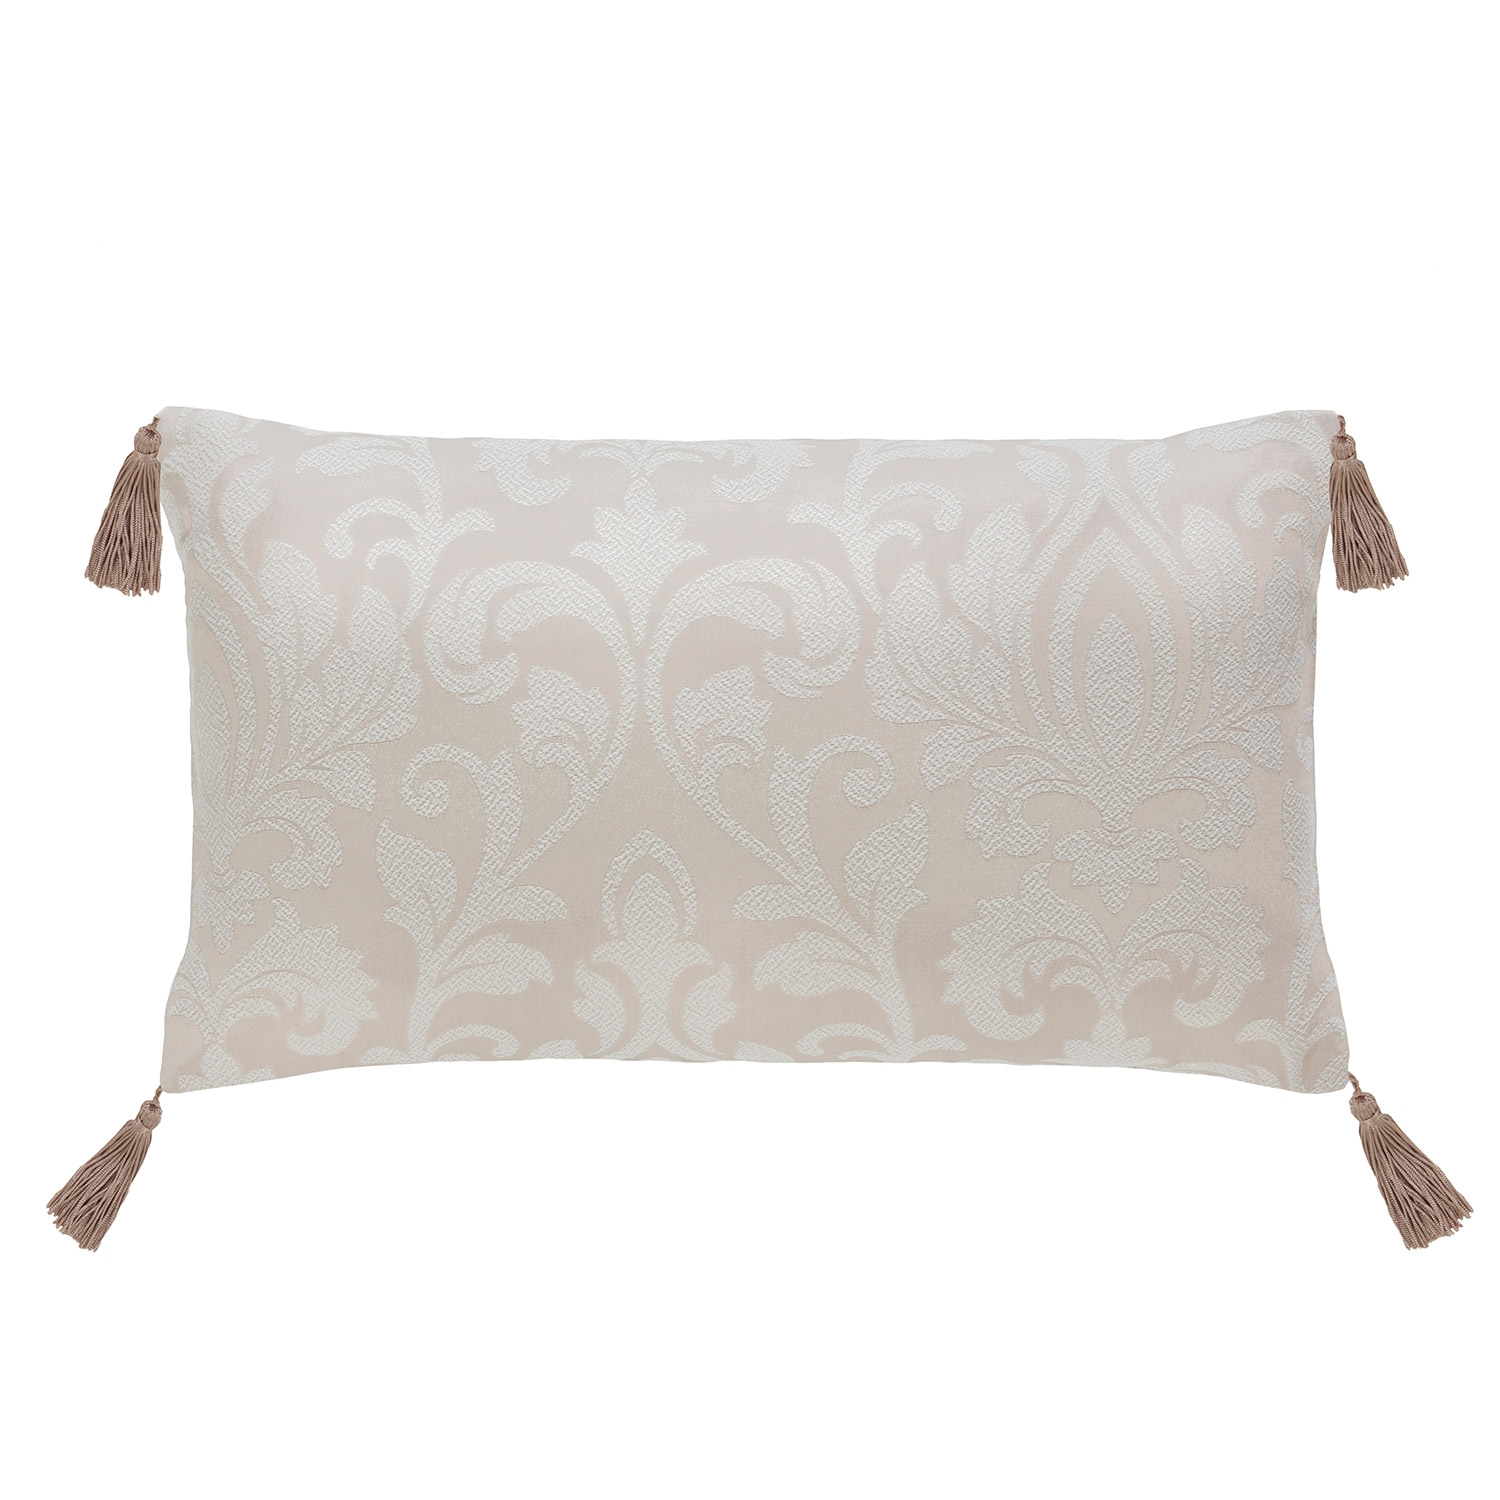 Gosford Linen Damask Jacquard Luxury Filled Boudoir Cushion